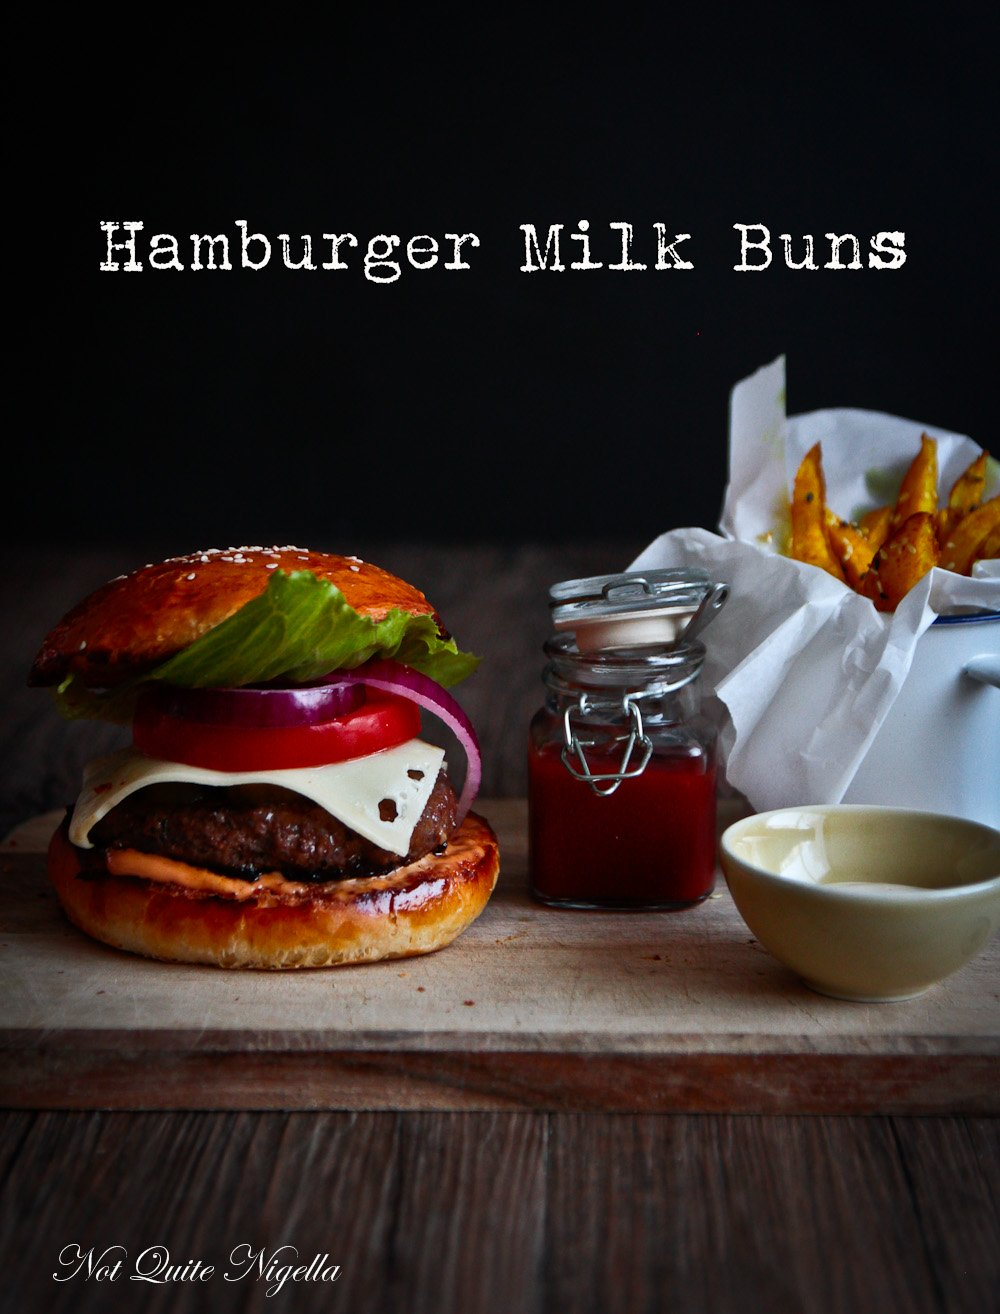 Hamburger Milk Buns